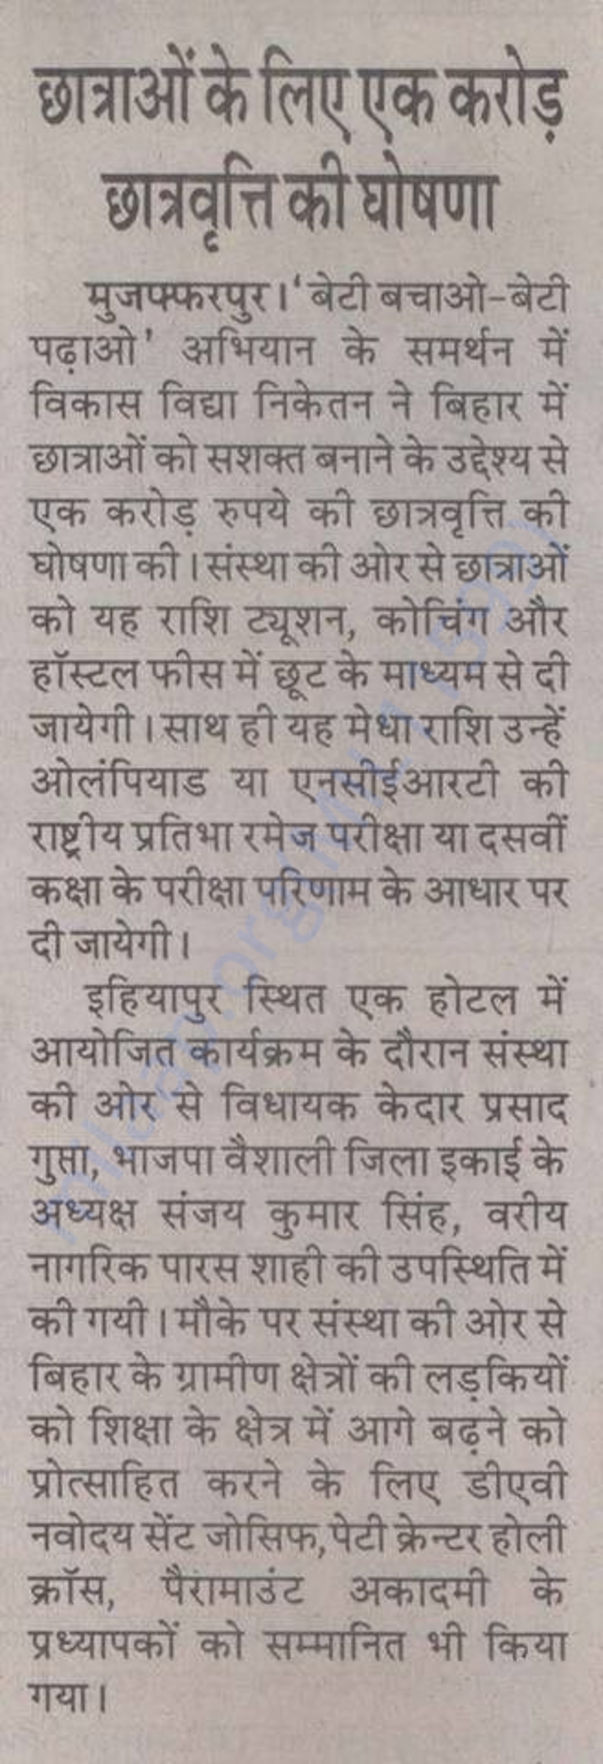 Coverage in Aaj, May 2016